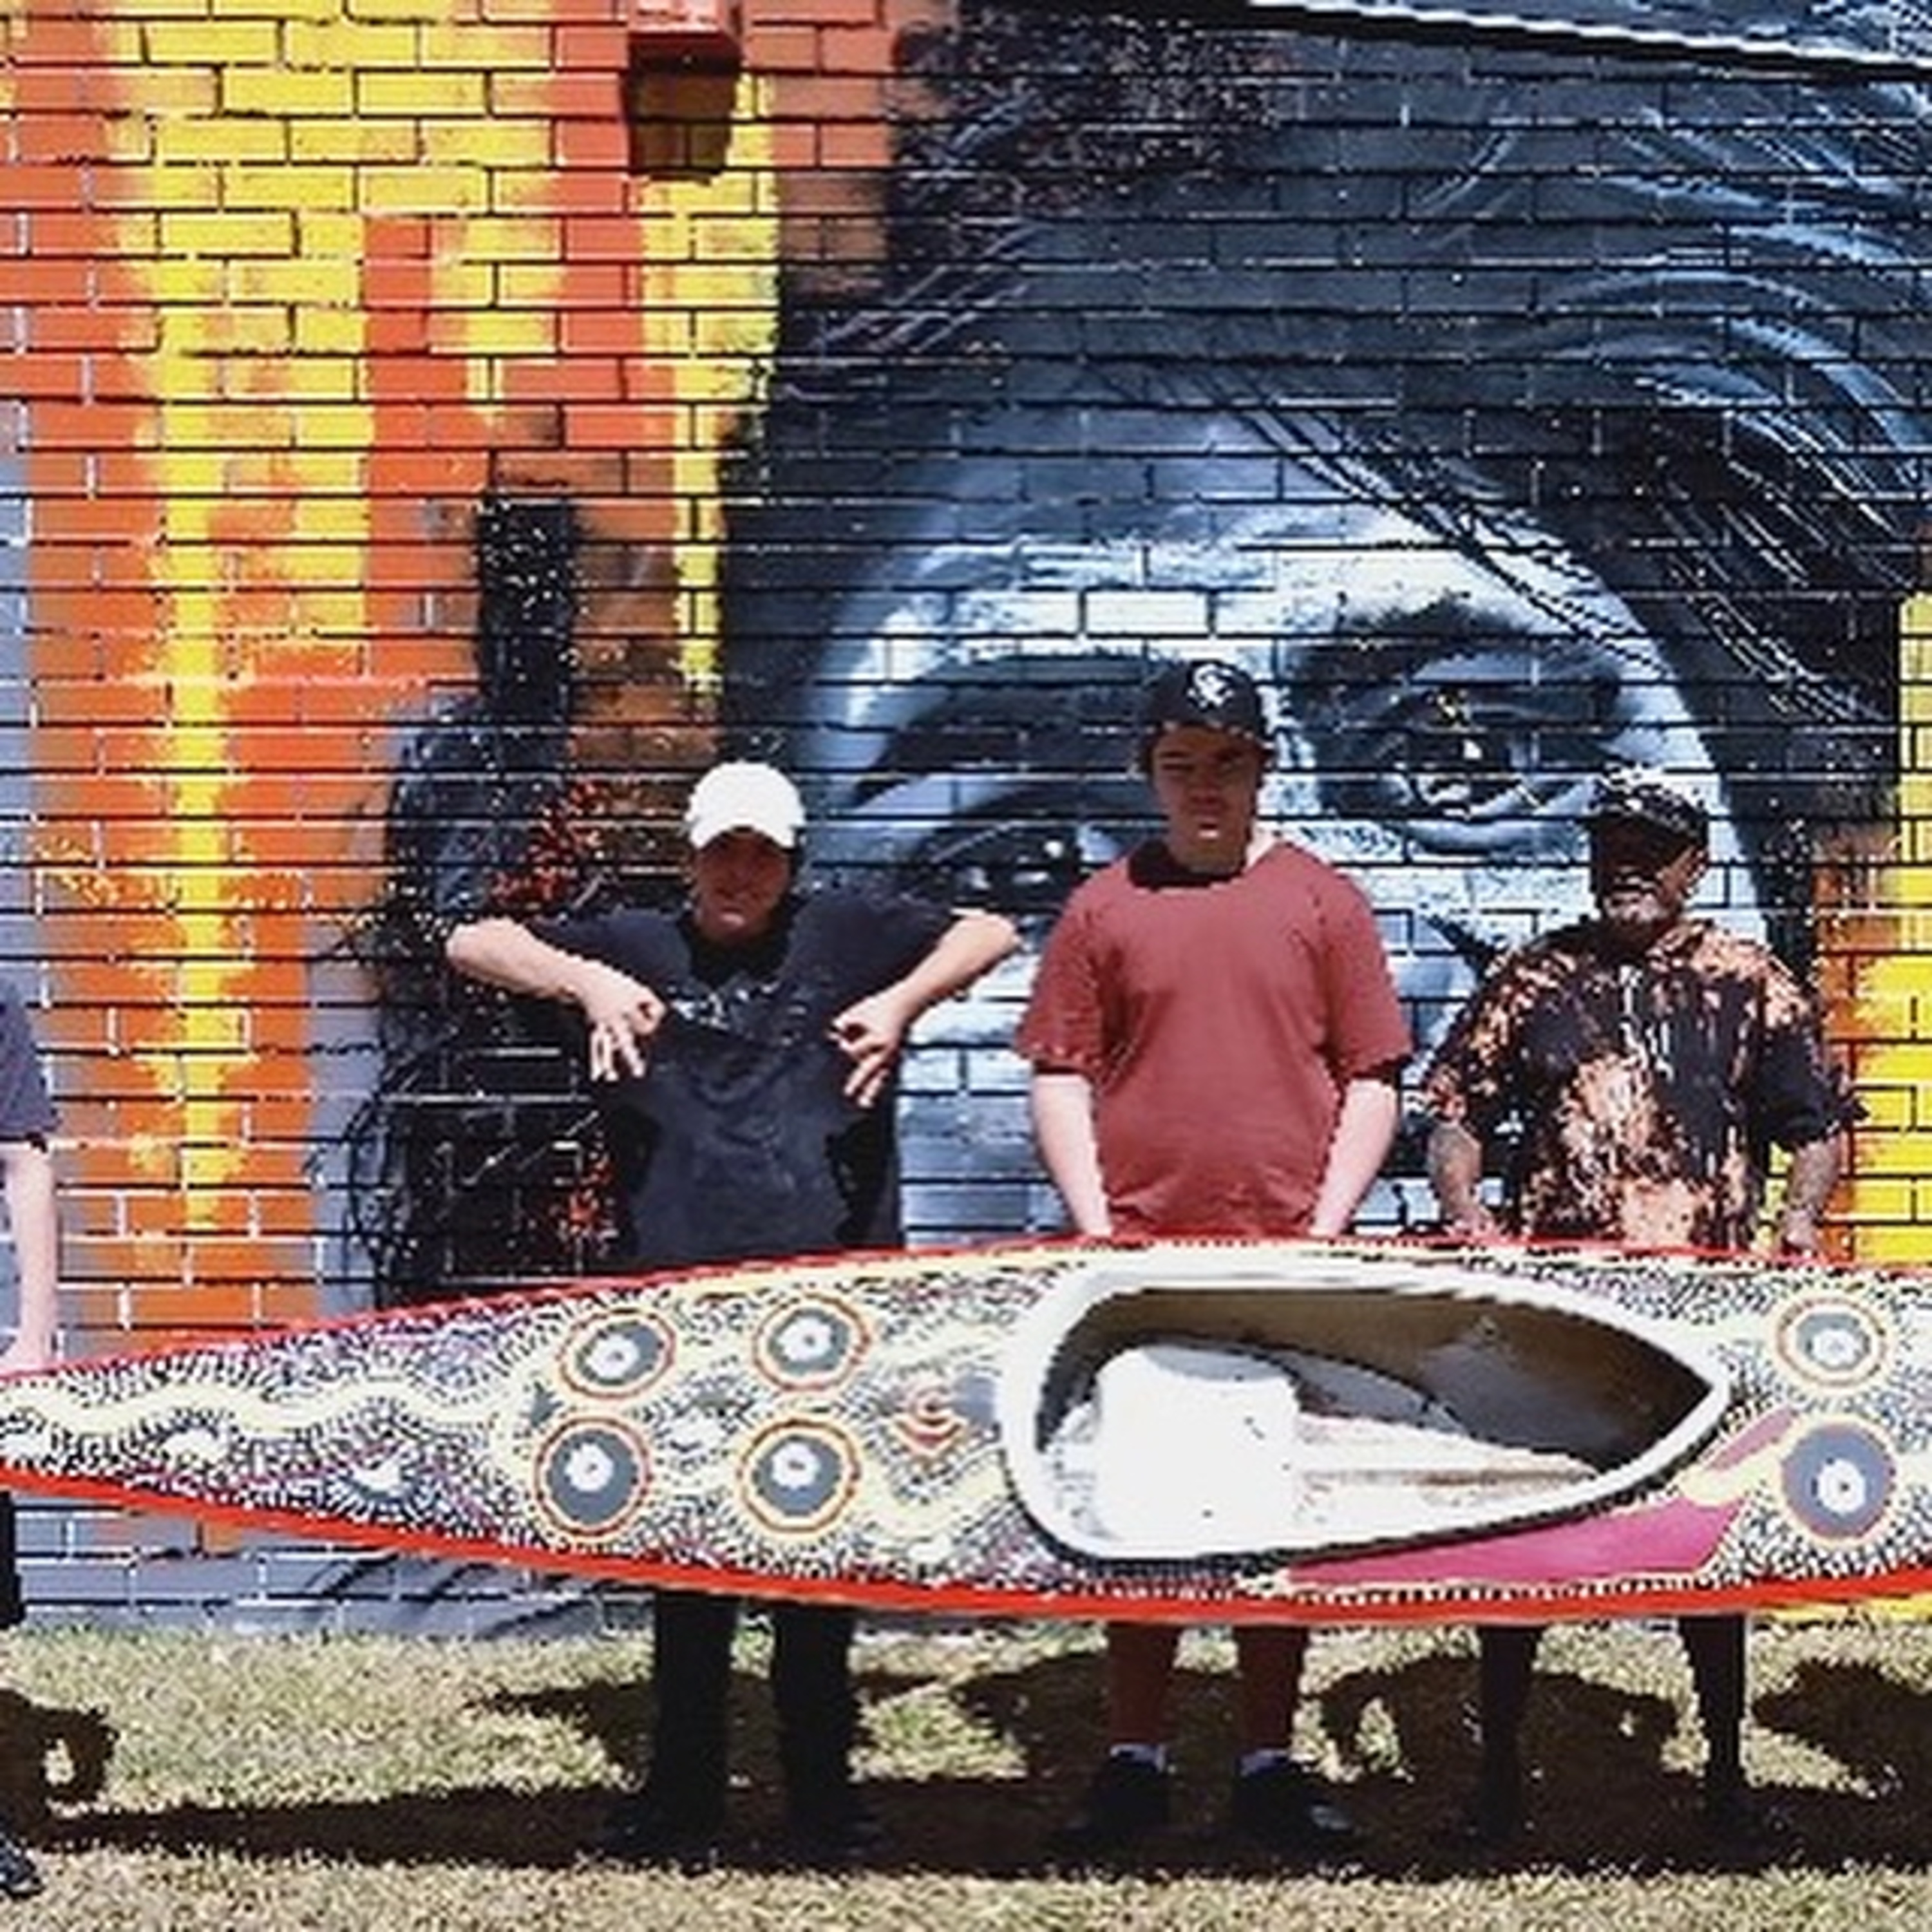 EP 15- indigenous artist Torry talks nature, art &culture with disengaged youth.